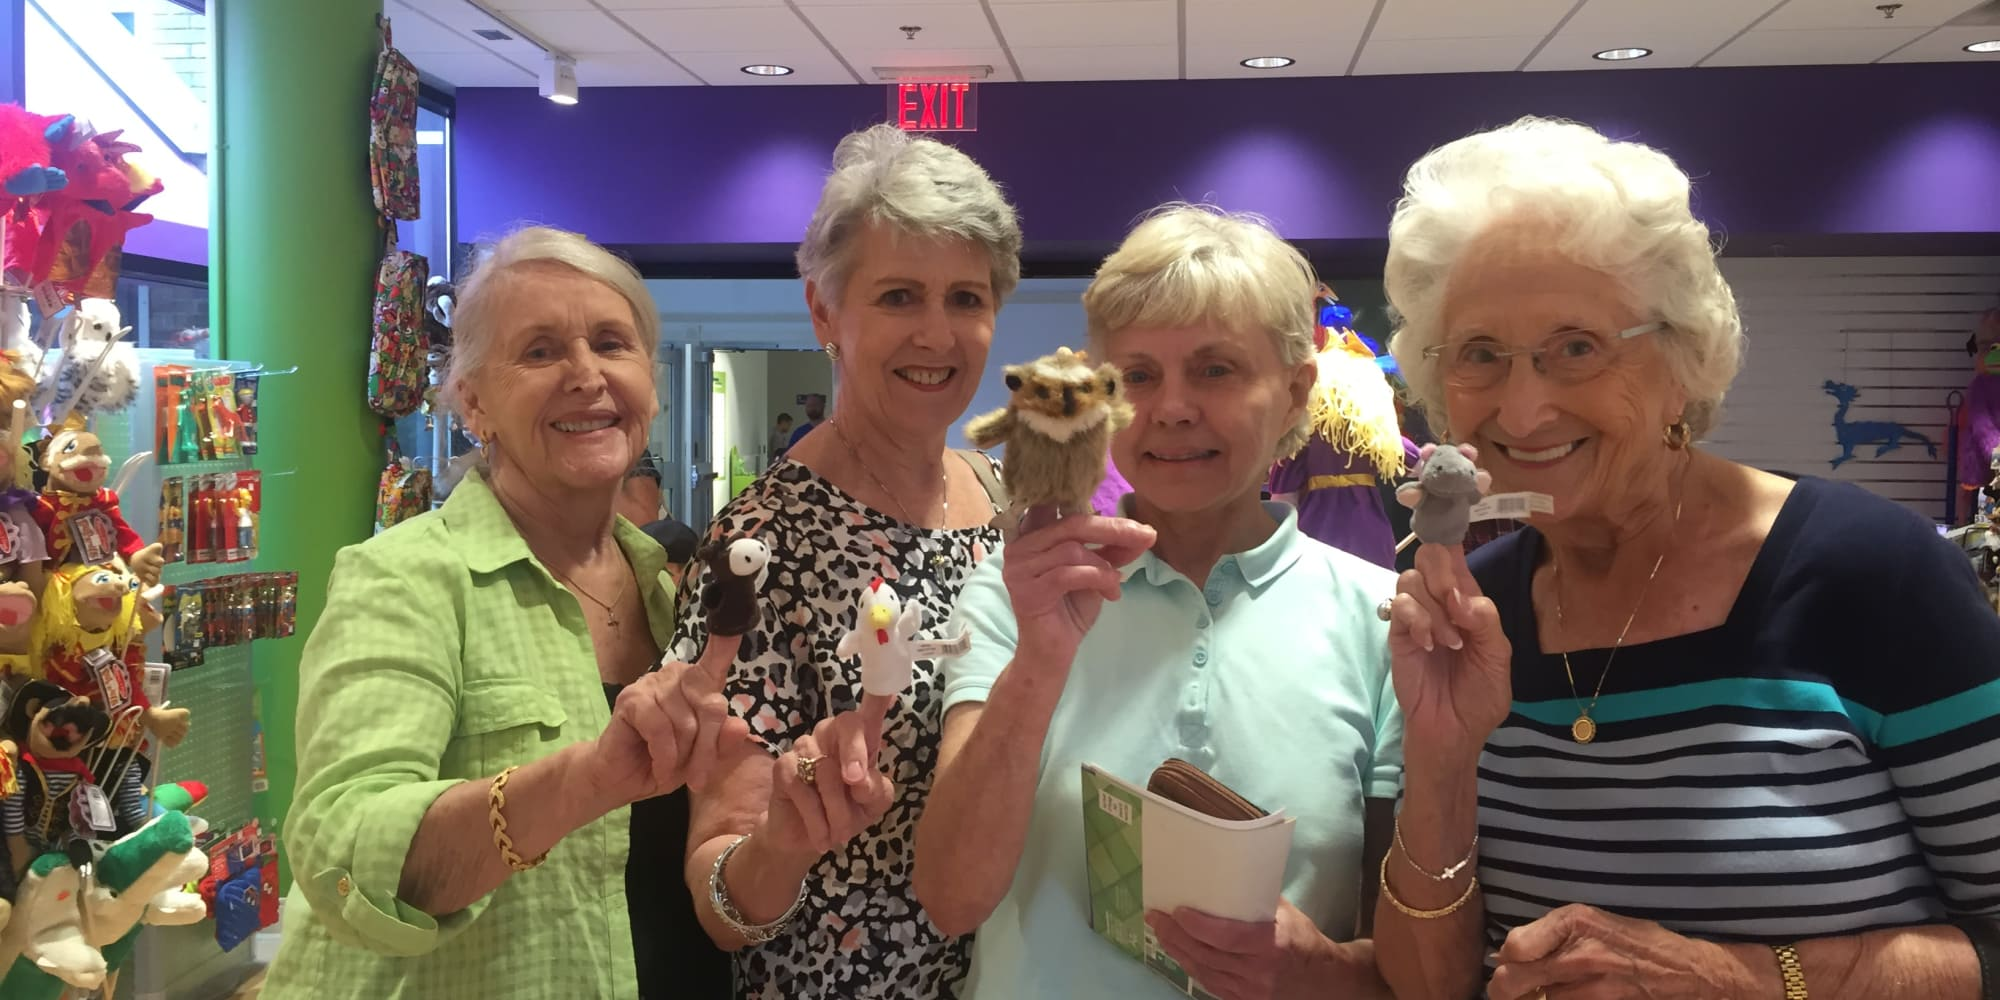 Residents from Liberty Heights Gracious Retirement Living in Rockwall, Texas holding finger puppets in a store